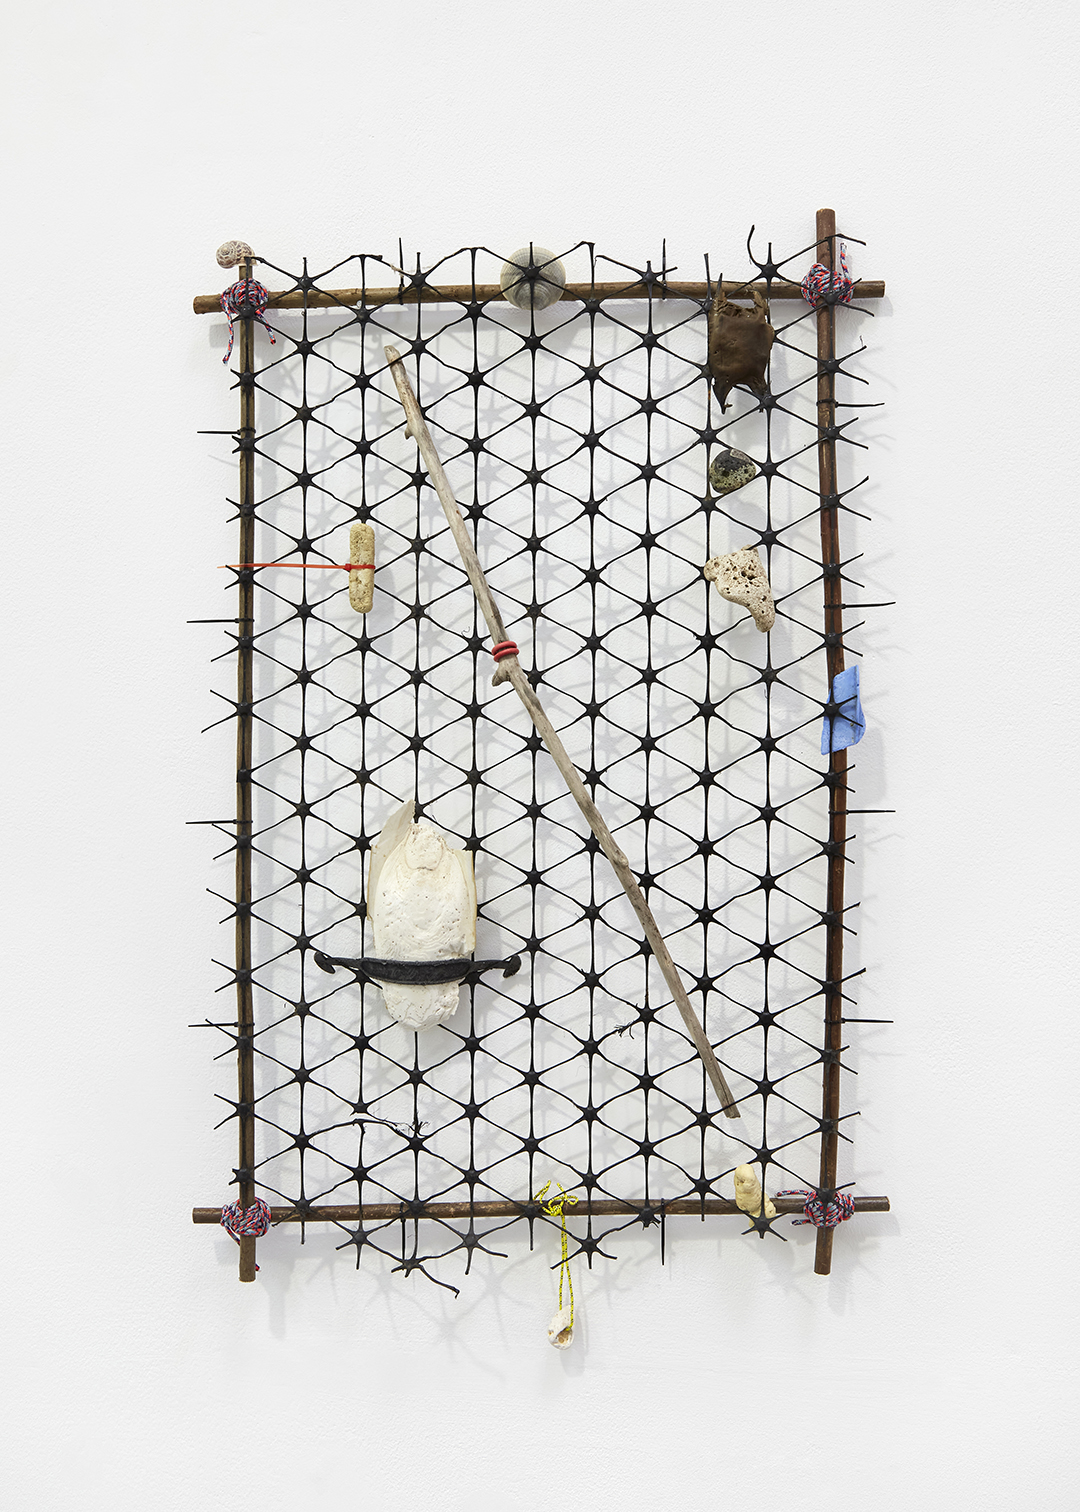 Field — Willow, paracord, cable ties, section of fence, plastic, cuttlefish bone, stone, pyroplastic, wire, mermaid's purse, flint, whalebone, driftwood.